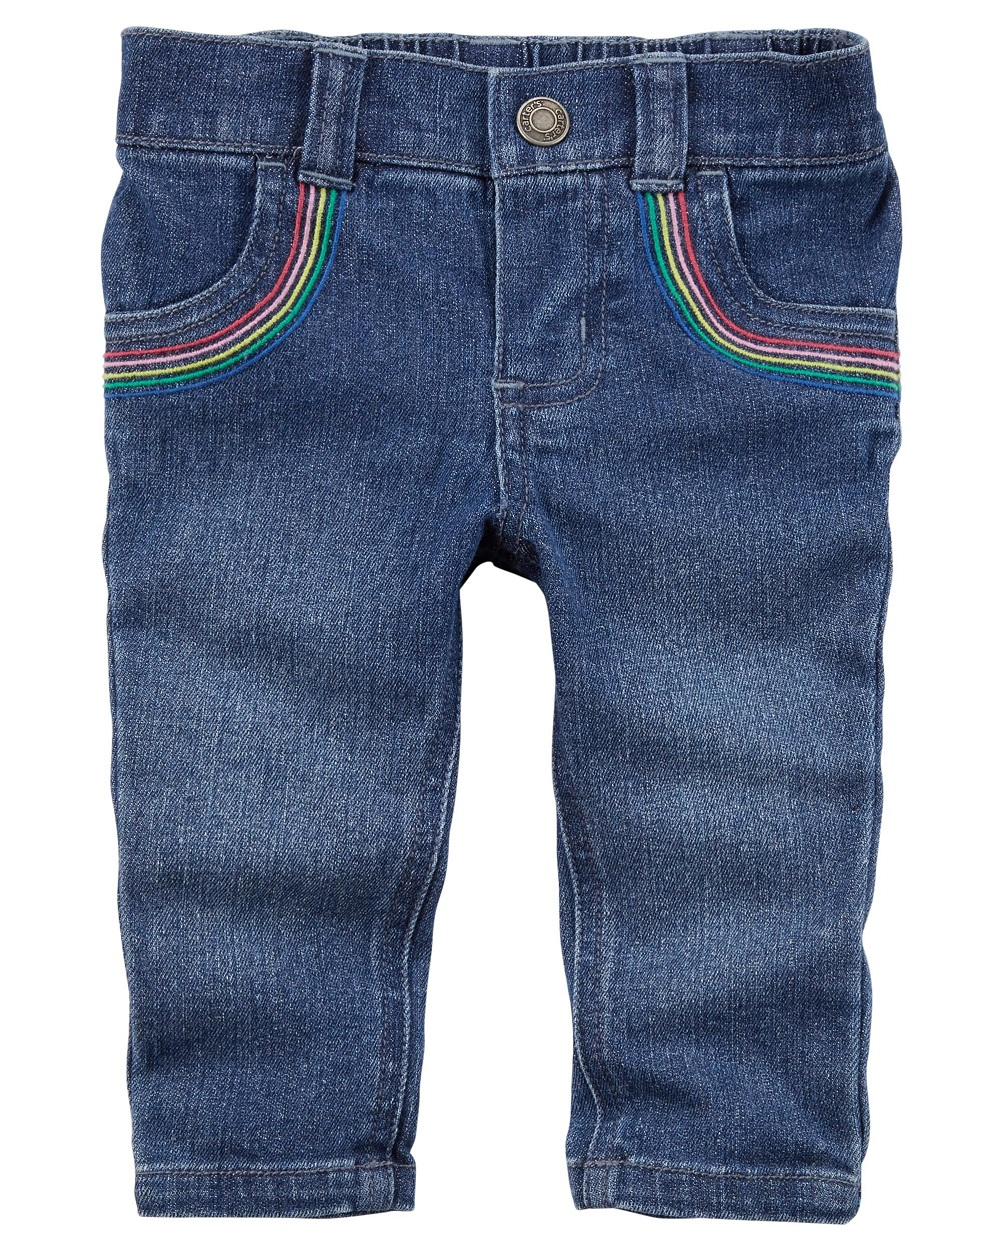 Carter's Baby Girls' Rainbow Jeans, 3 Months